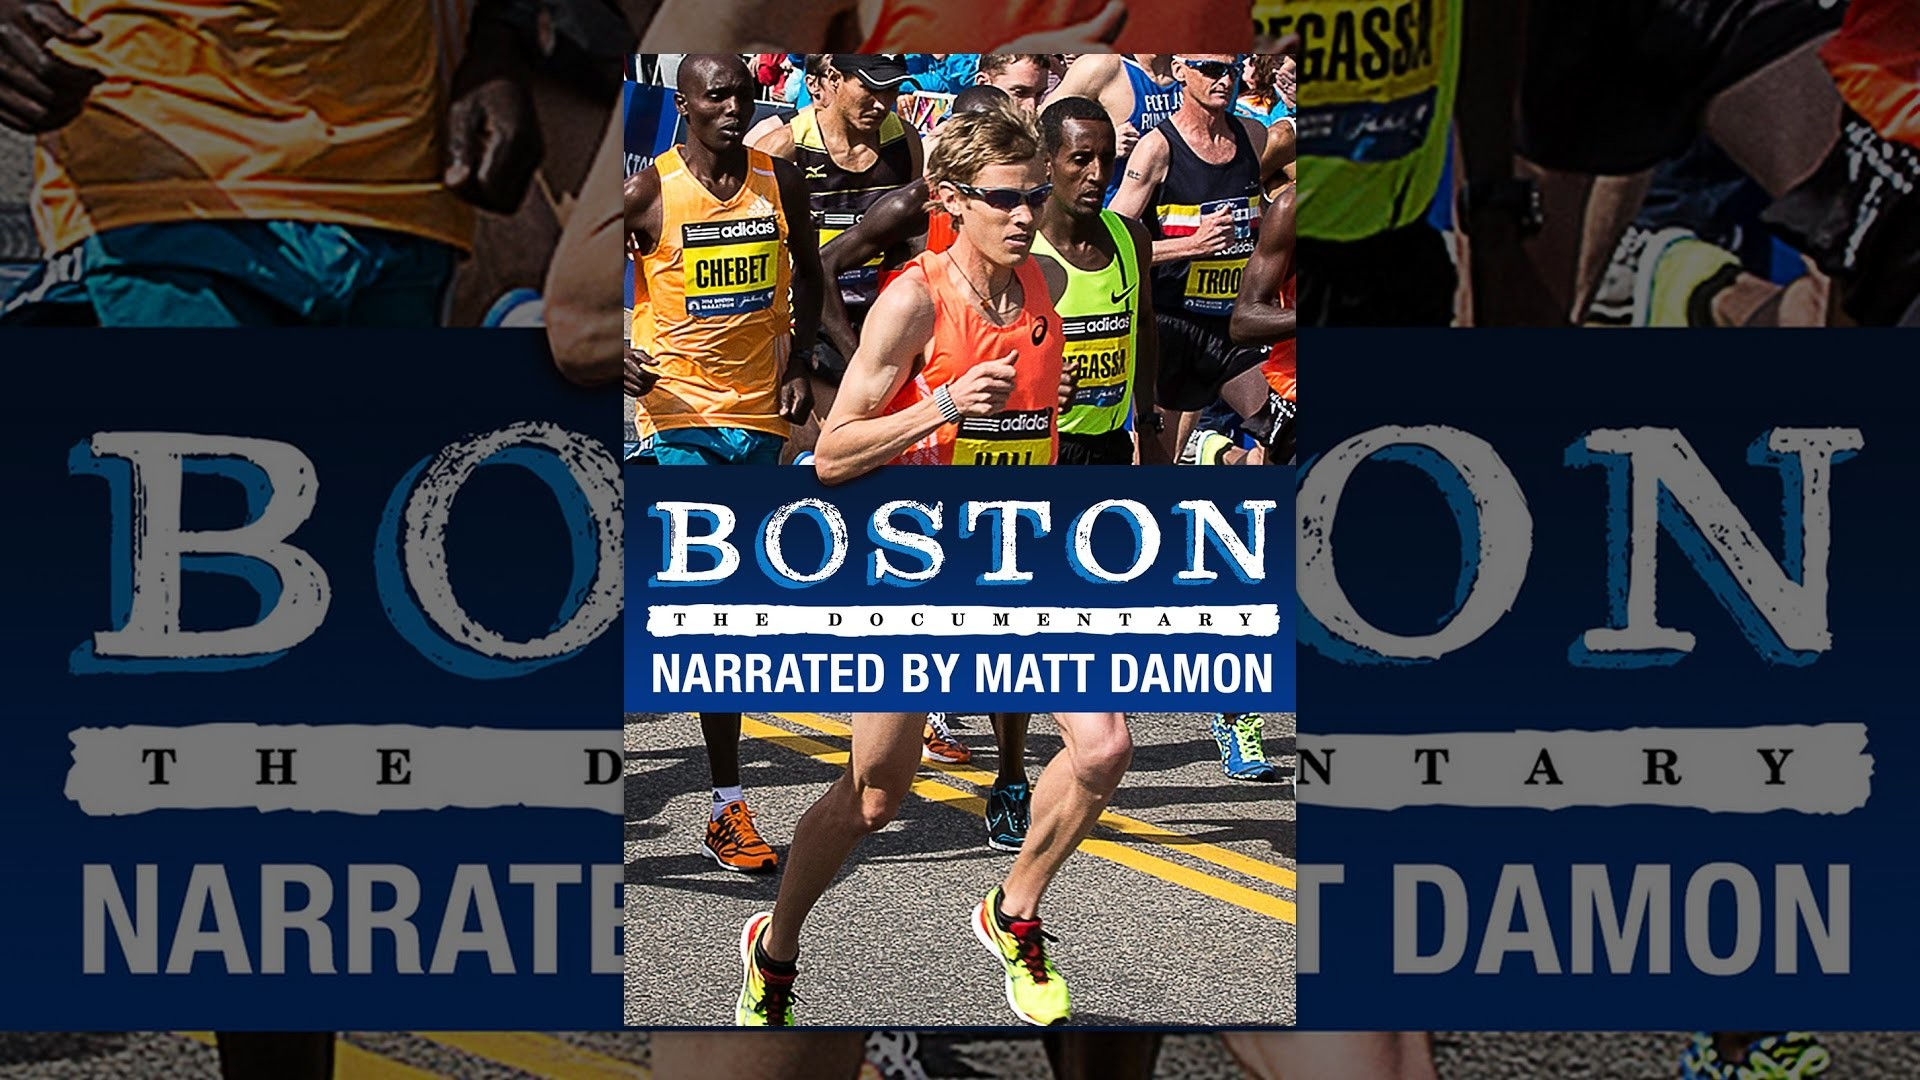 Boston narrated by Matt Damon on the big screen April 12-19 in Boston